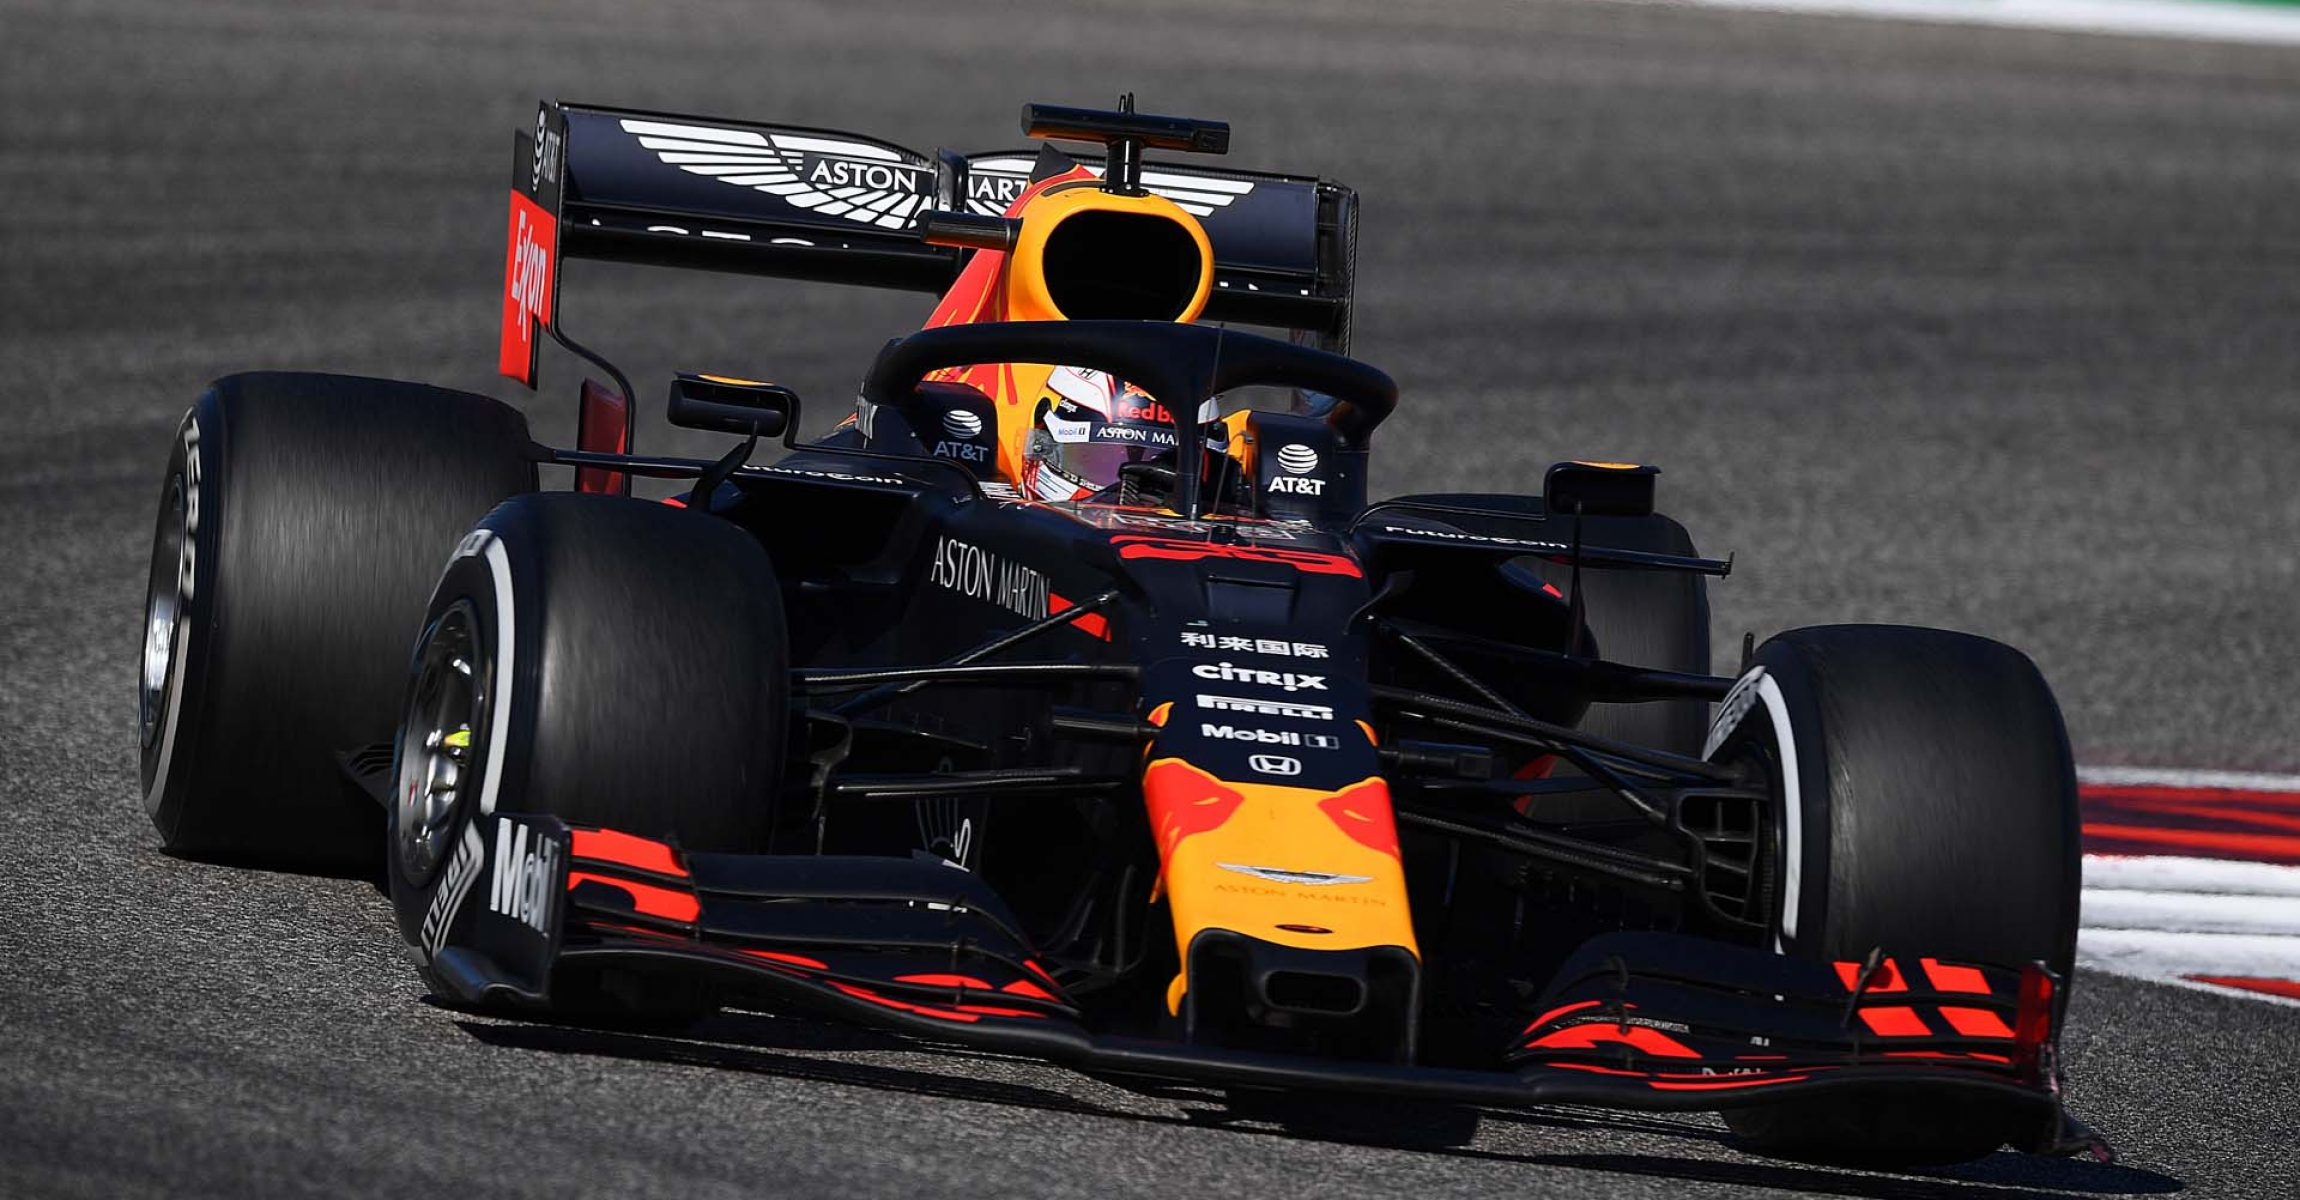 AUSTIN, TEXAS - NOVEMBER 03: Max Verstappen of the Netherlands driving the (33) Aston Martin Red Bull Racing RB15 on track during the F1 Grand Prix of USA at Circuit of The Americas on November 03, 2019 in Austin, Texas. (Photo by Clive Mason/Getty Images) // Getty Images / Red Bull Content Pool // AP-222Y848U52111 // Usage for editorial use only //